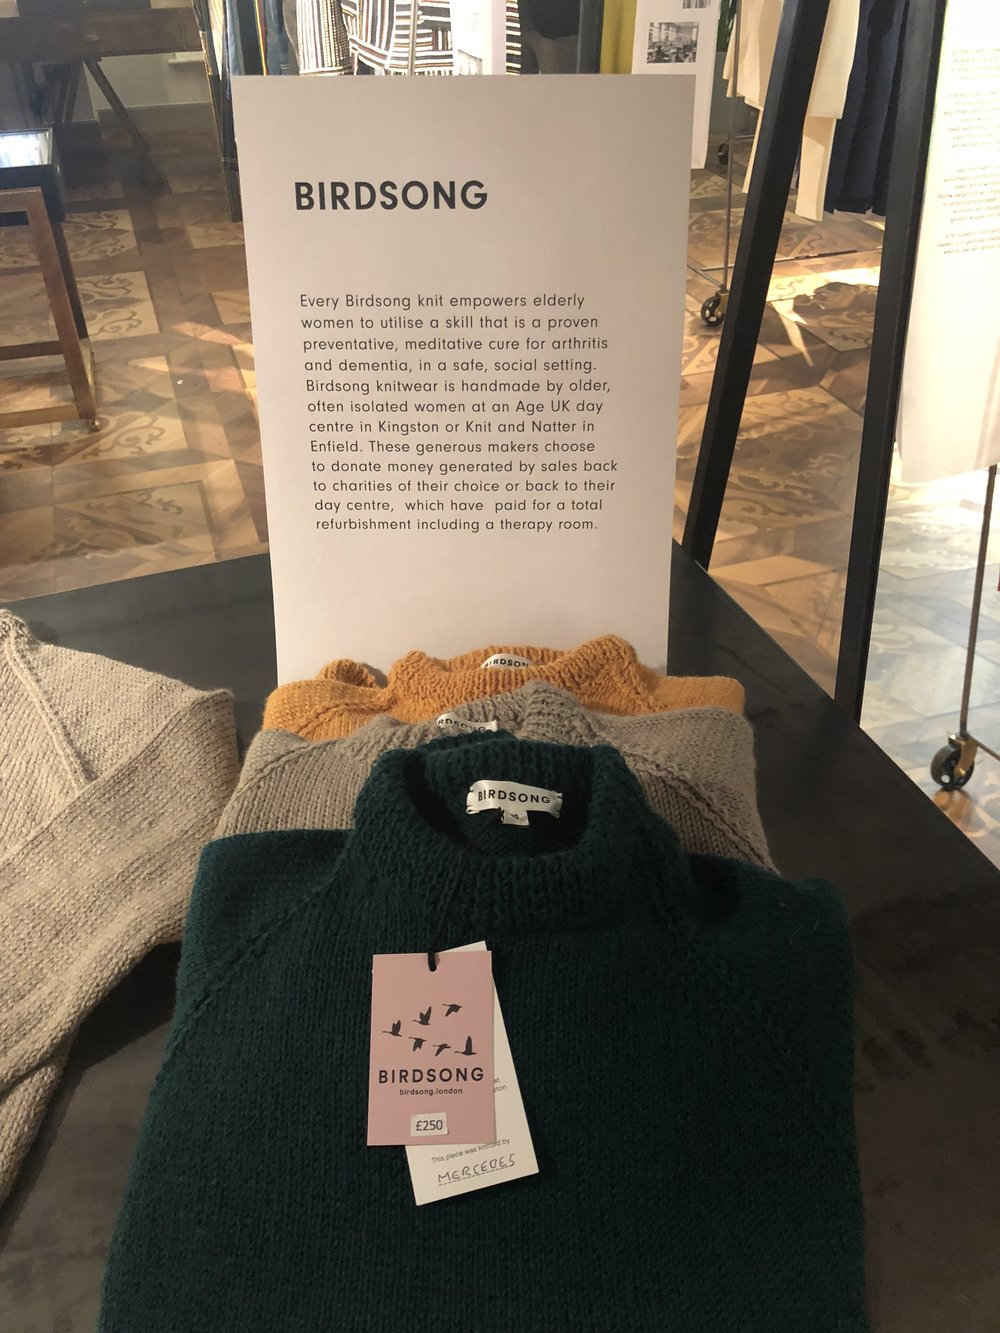 London-based brand Birdsong produces knitwear handmade by older isolated women.